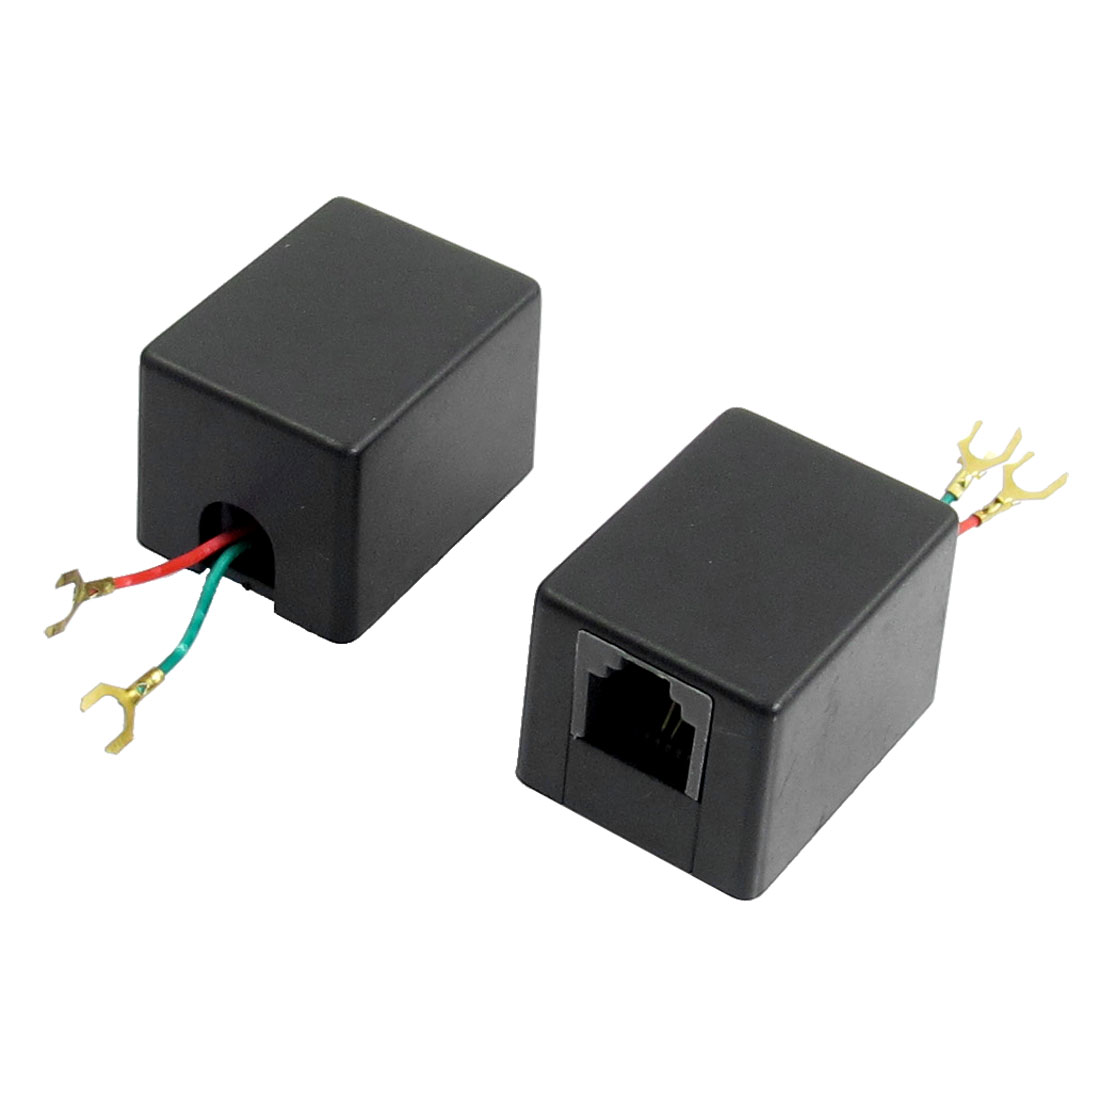 2 Pcs Black Telephone RJ11 Female to 2-wire Convertor Inline Coupler Adapter